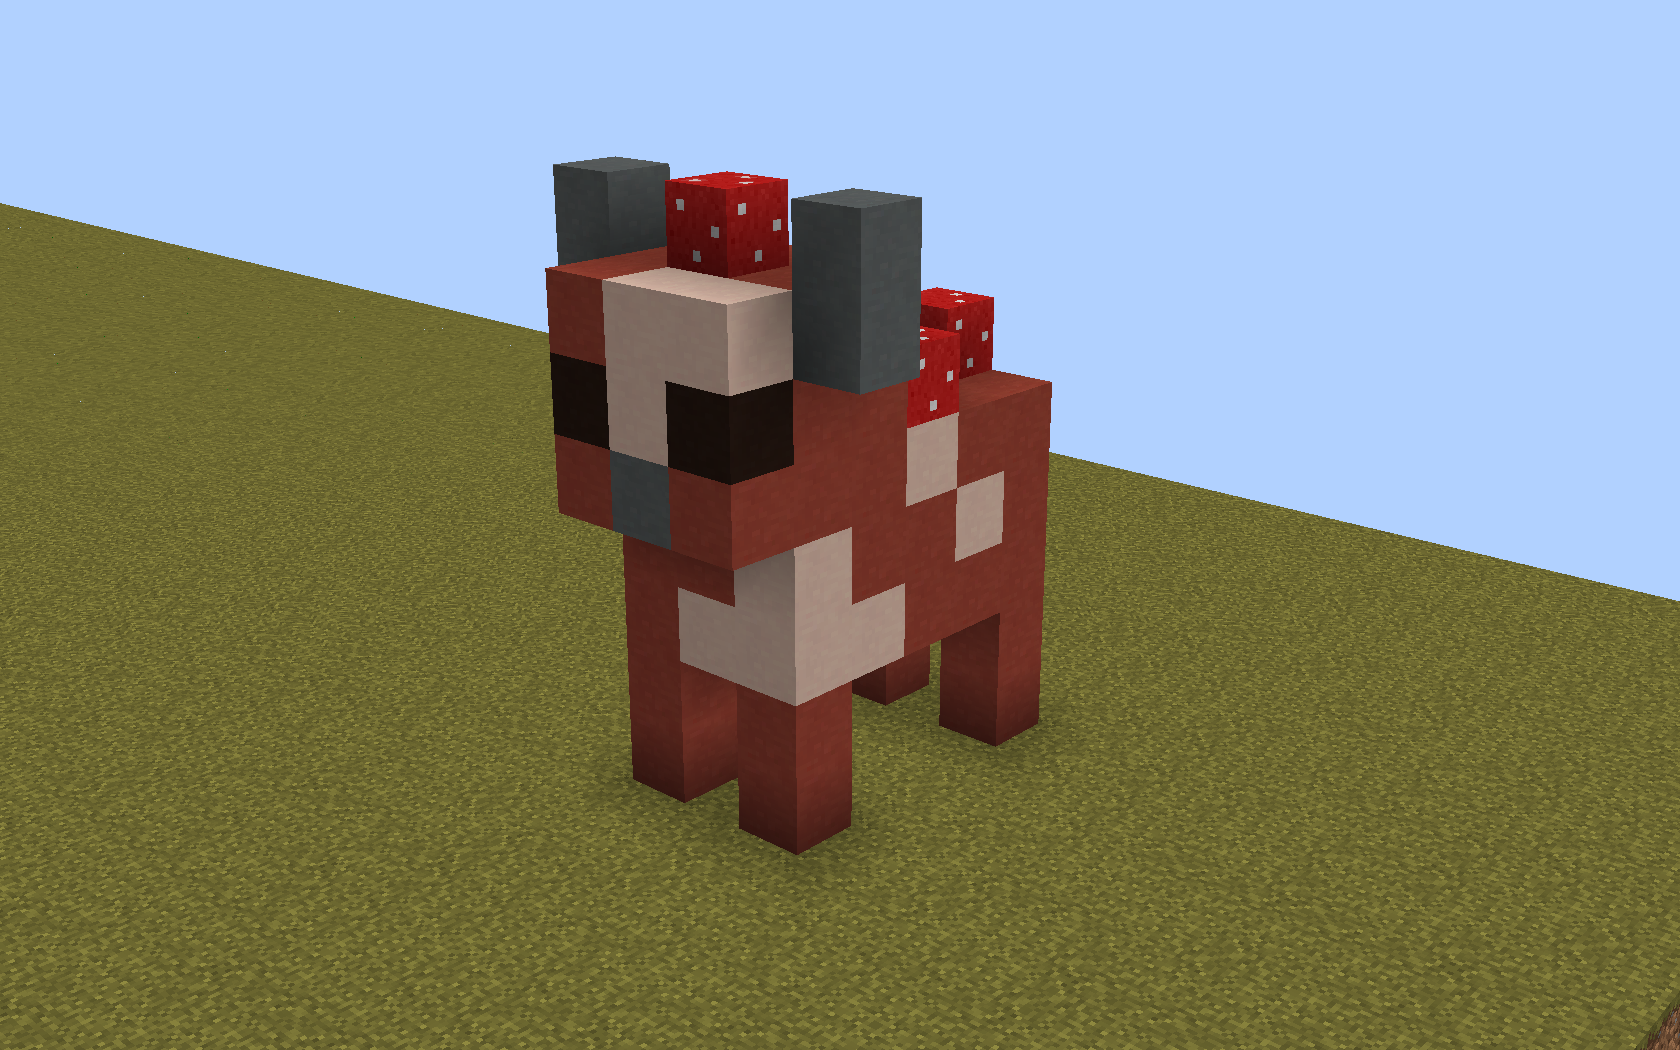 How To Make A Cute Dog Statue In Minecraft